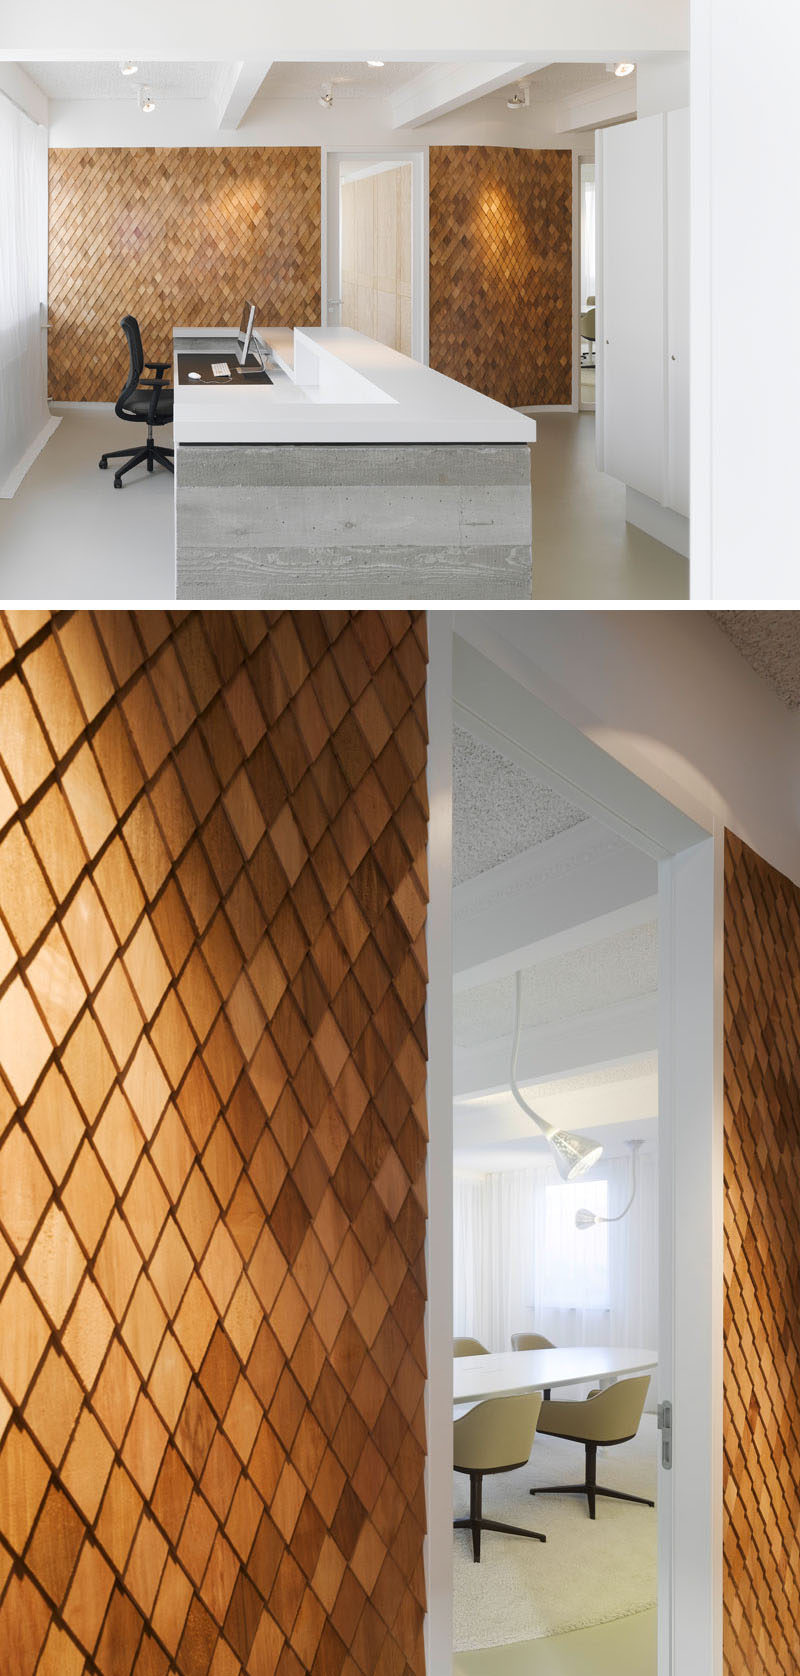 Interior Wood Paneling: Using Wood Shingles To Create An Accent Wall Adds Warmth